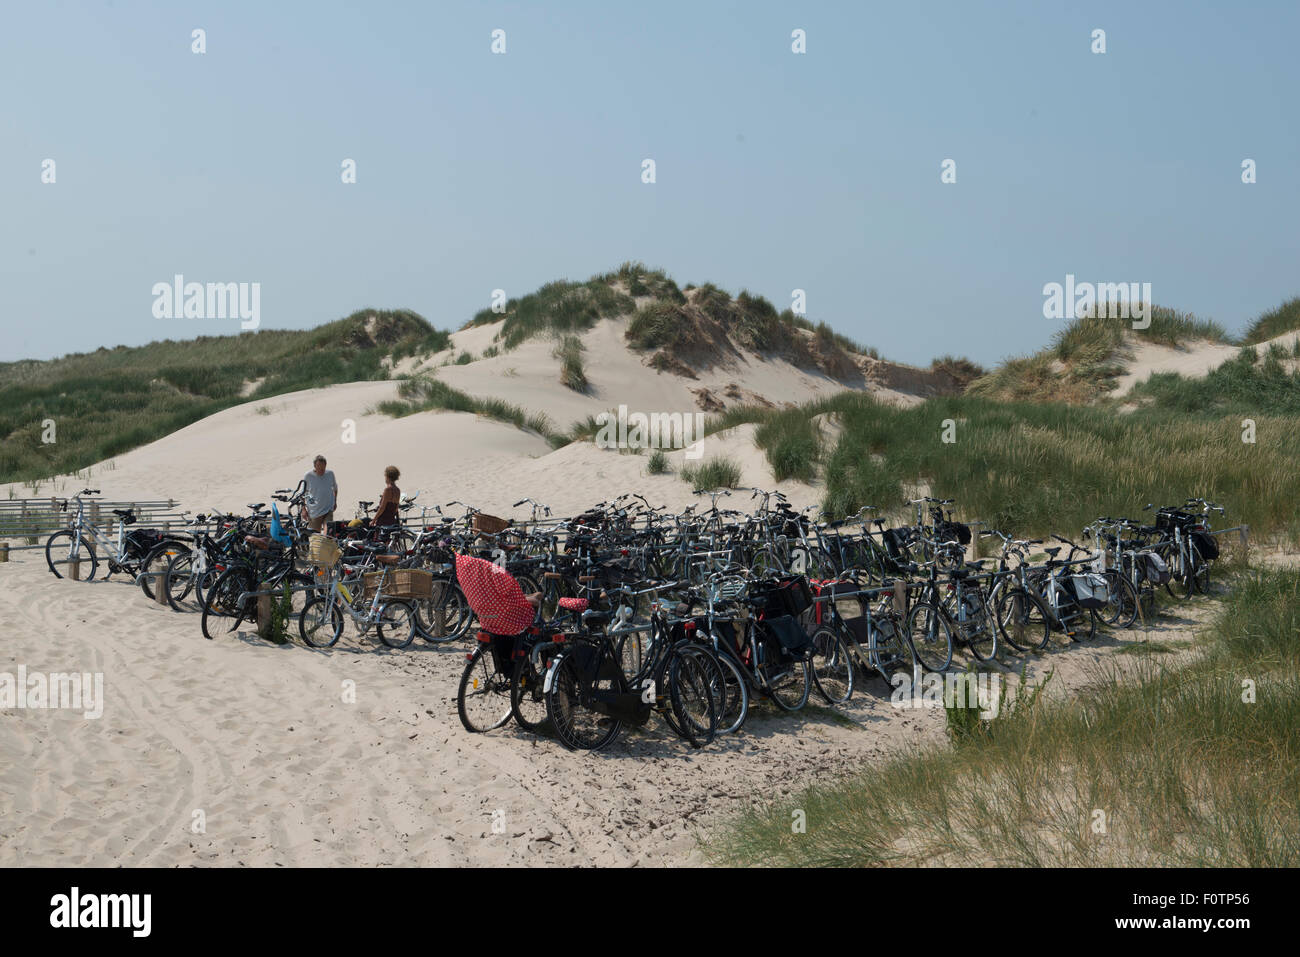 Bicycles on stands in the dunes of Bergen, Netherlands - Stock Image